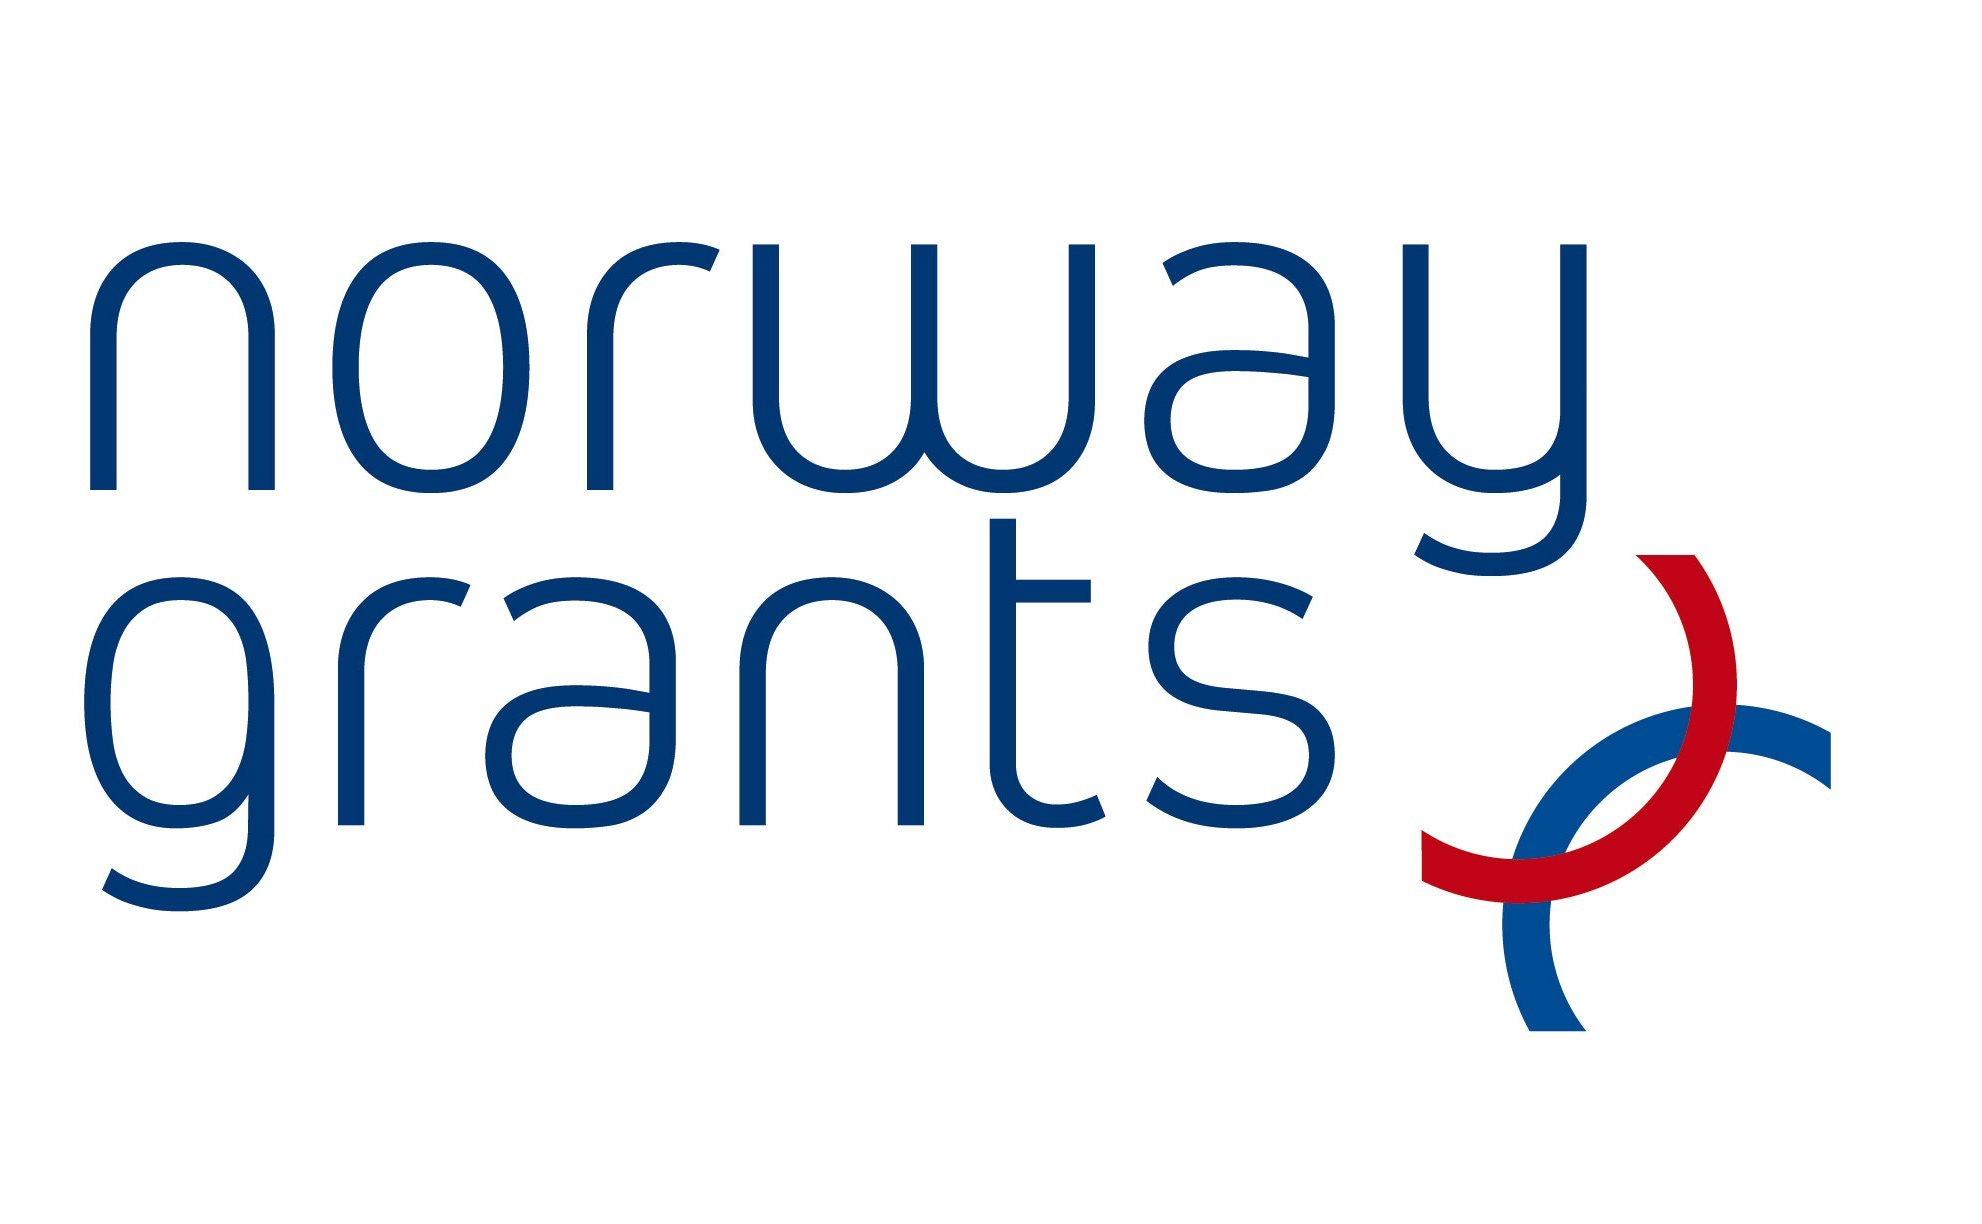 Foundation Involved In Norway Grants States Refusal To Cooperate In Govt Probe